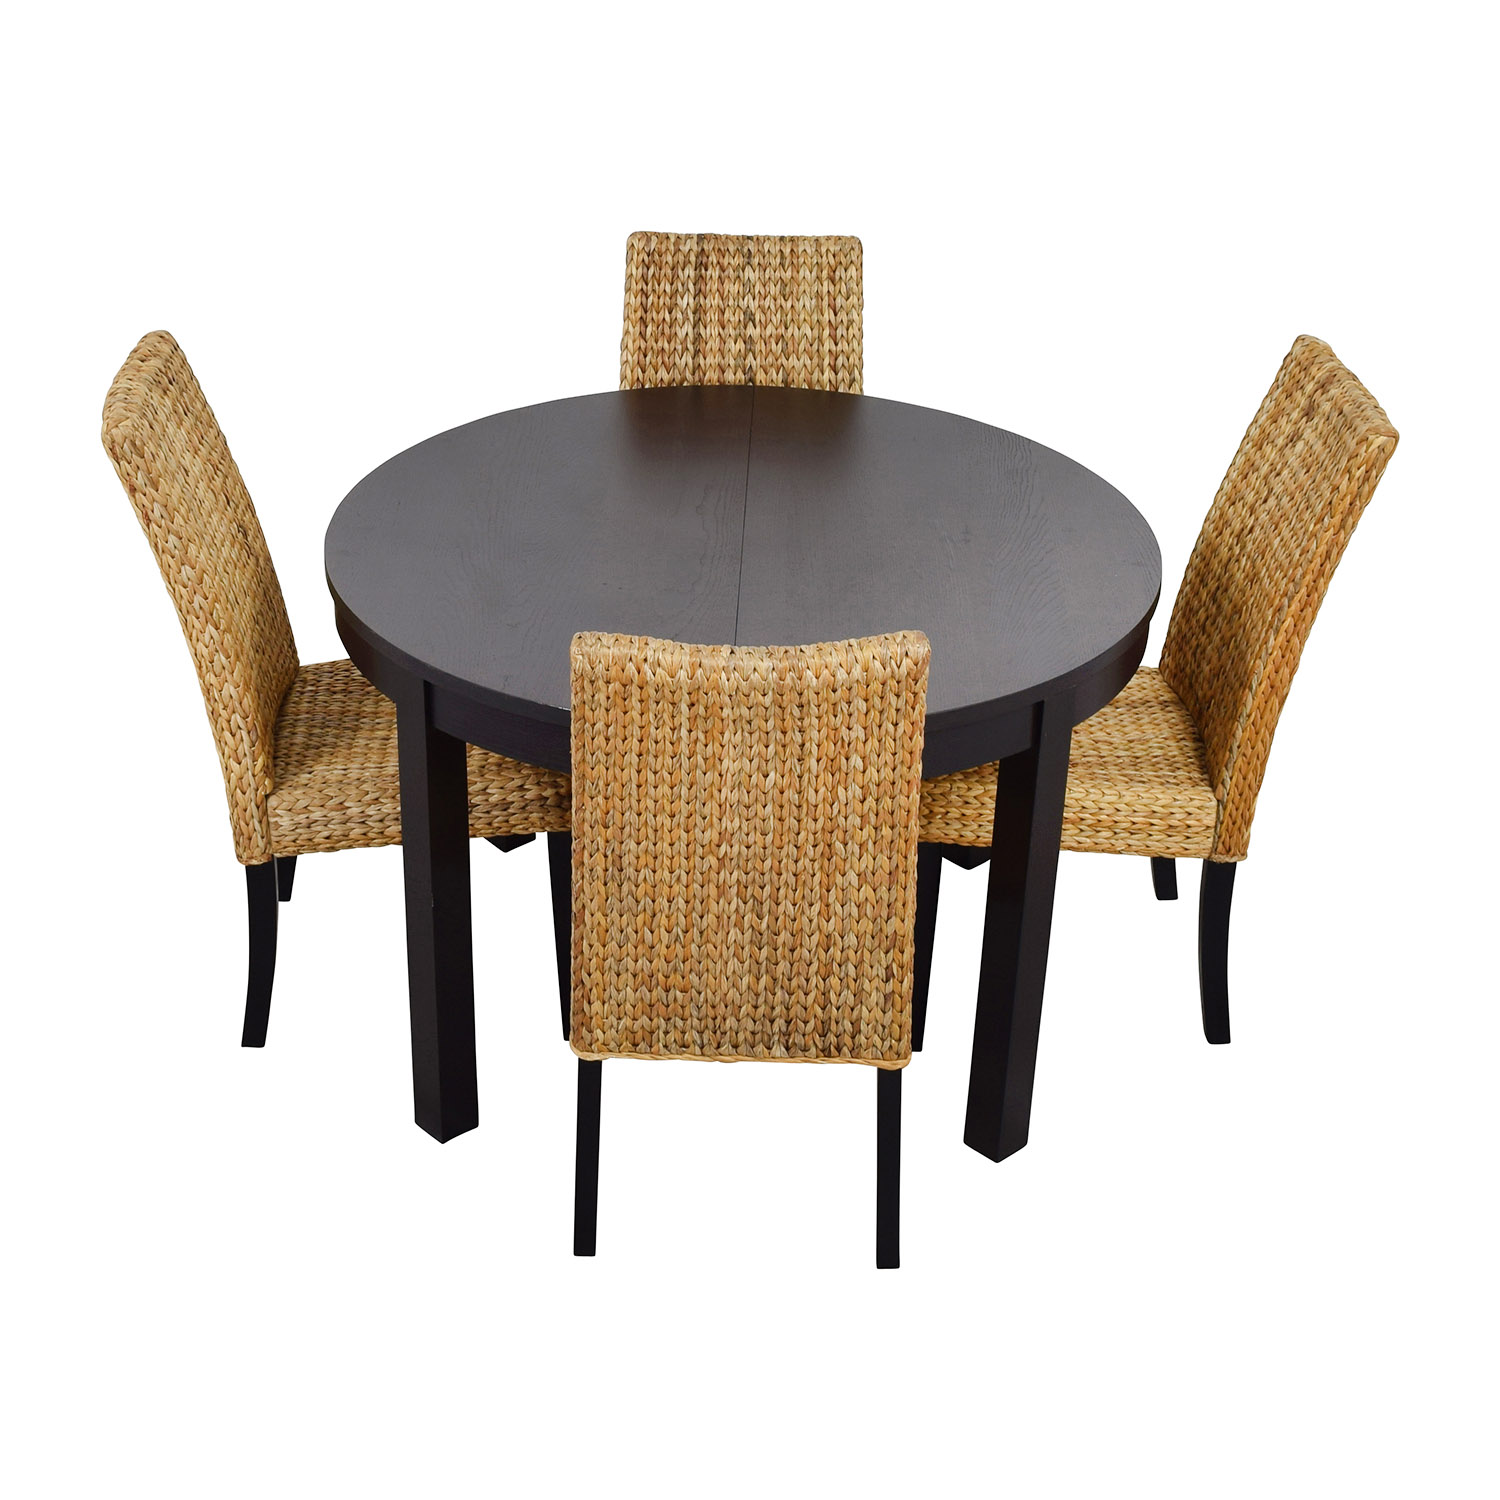 Macy's & IKEA Round Black Dining Table Set with Four Chairs nj